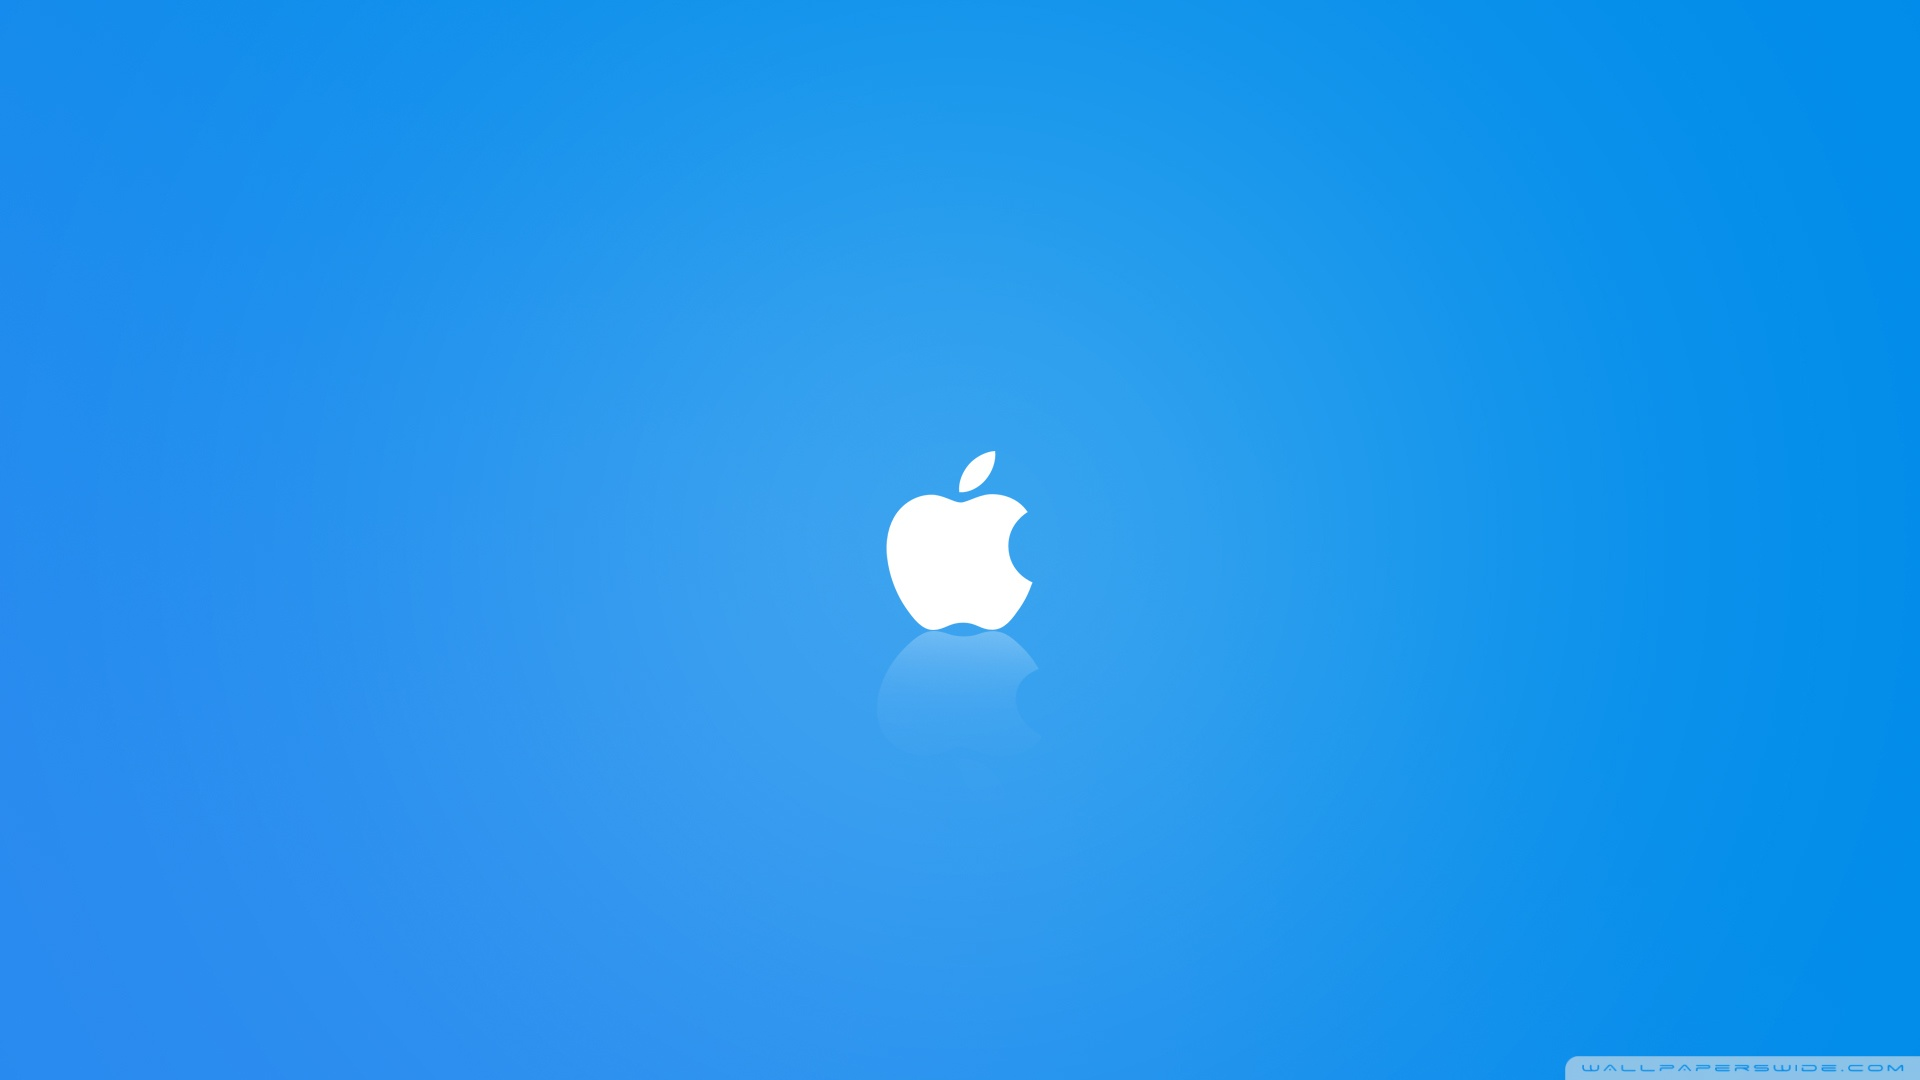 apple wallpapers for mac - sf wallpaper